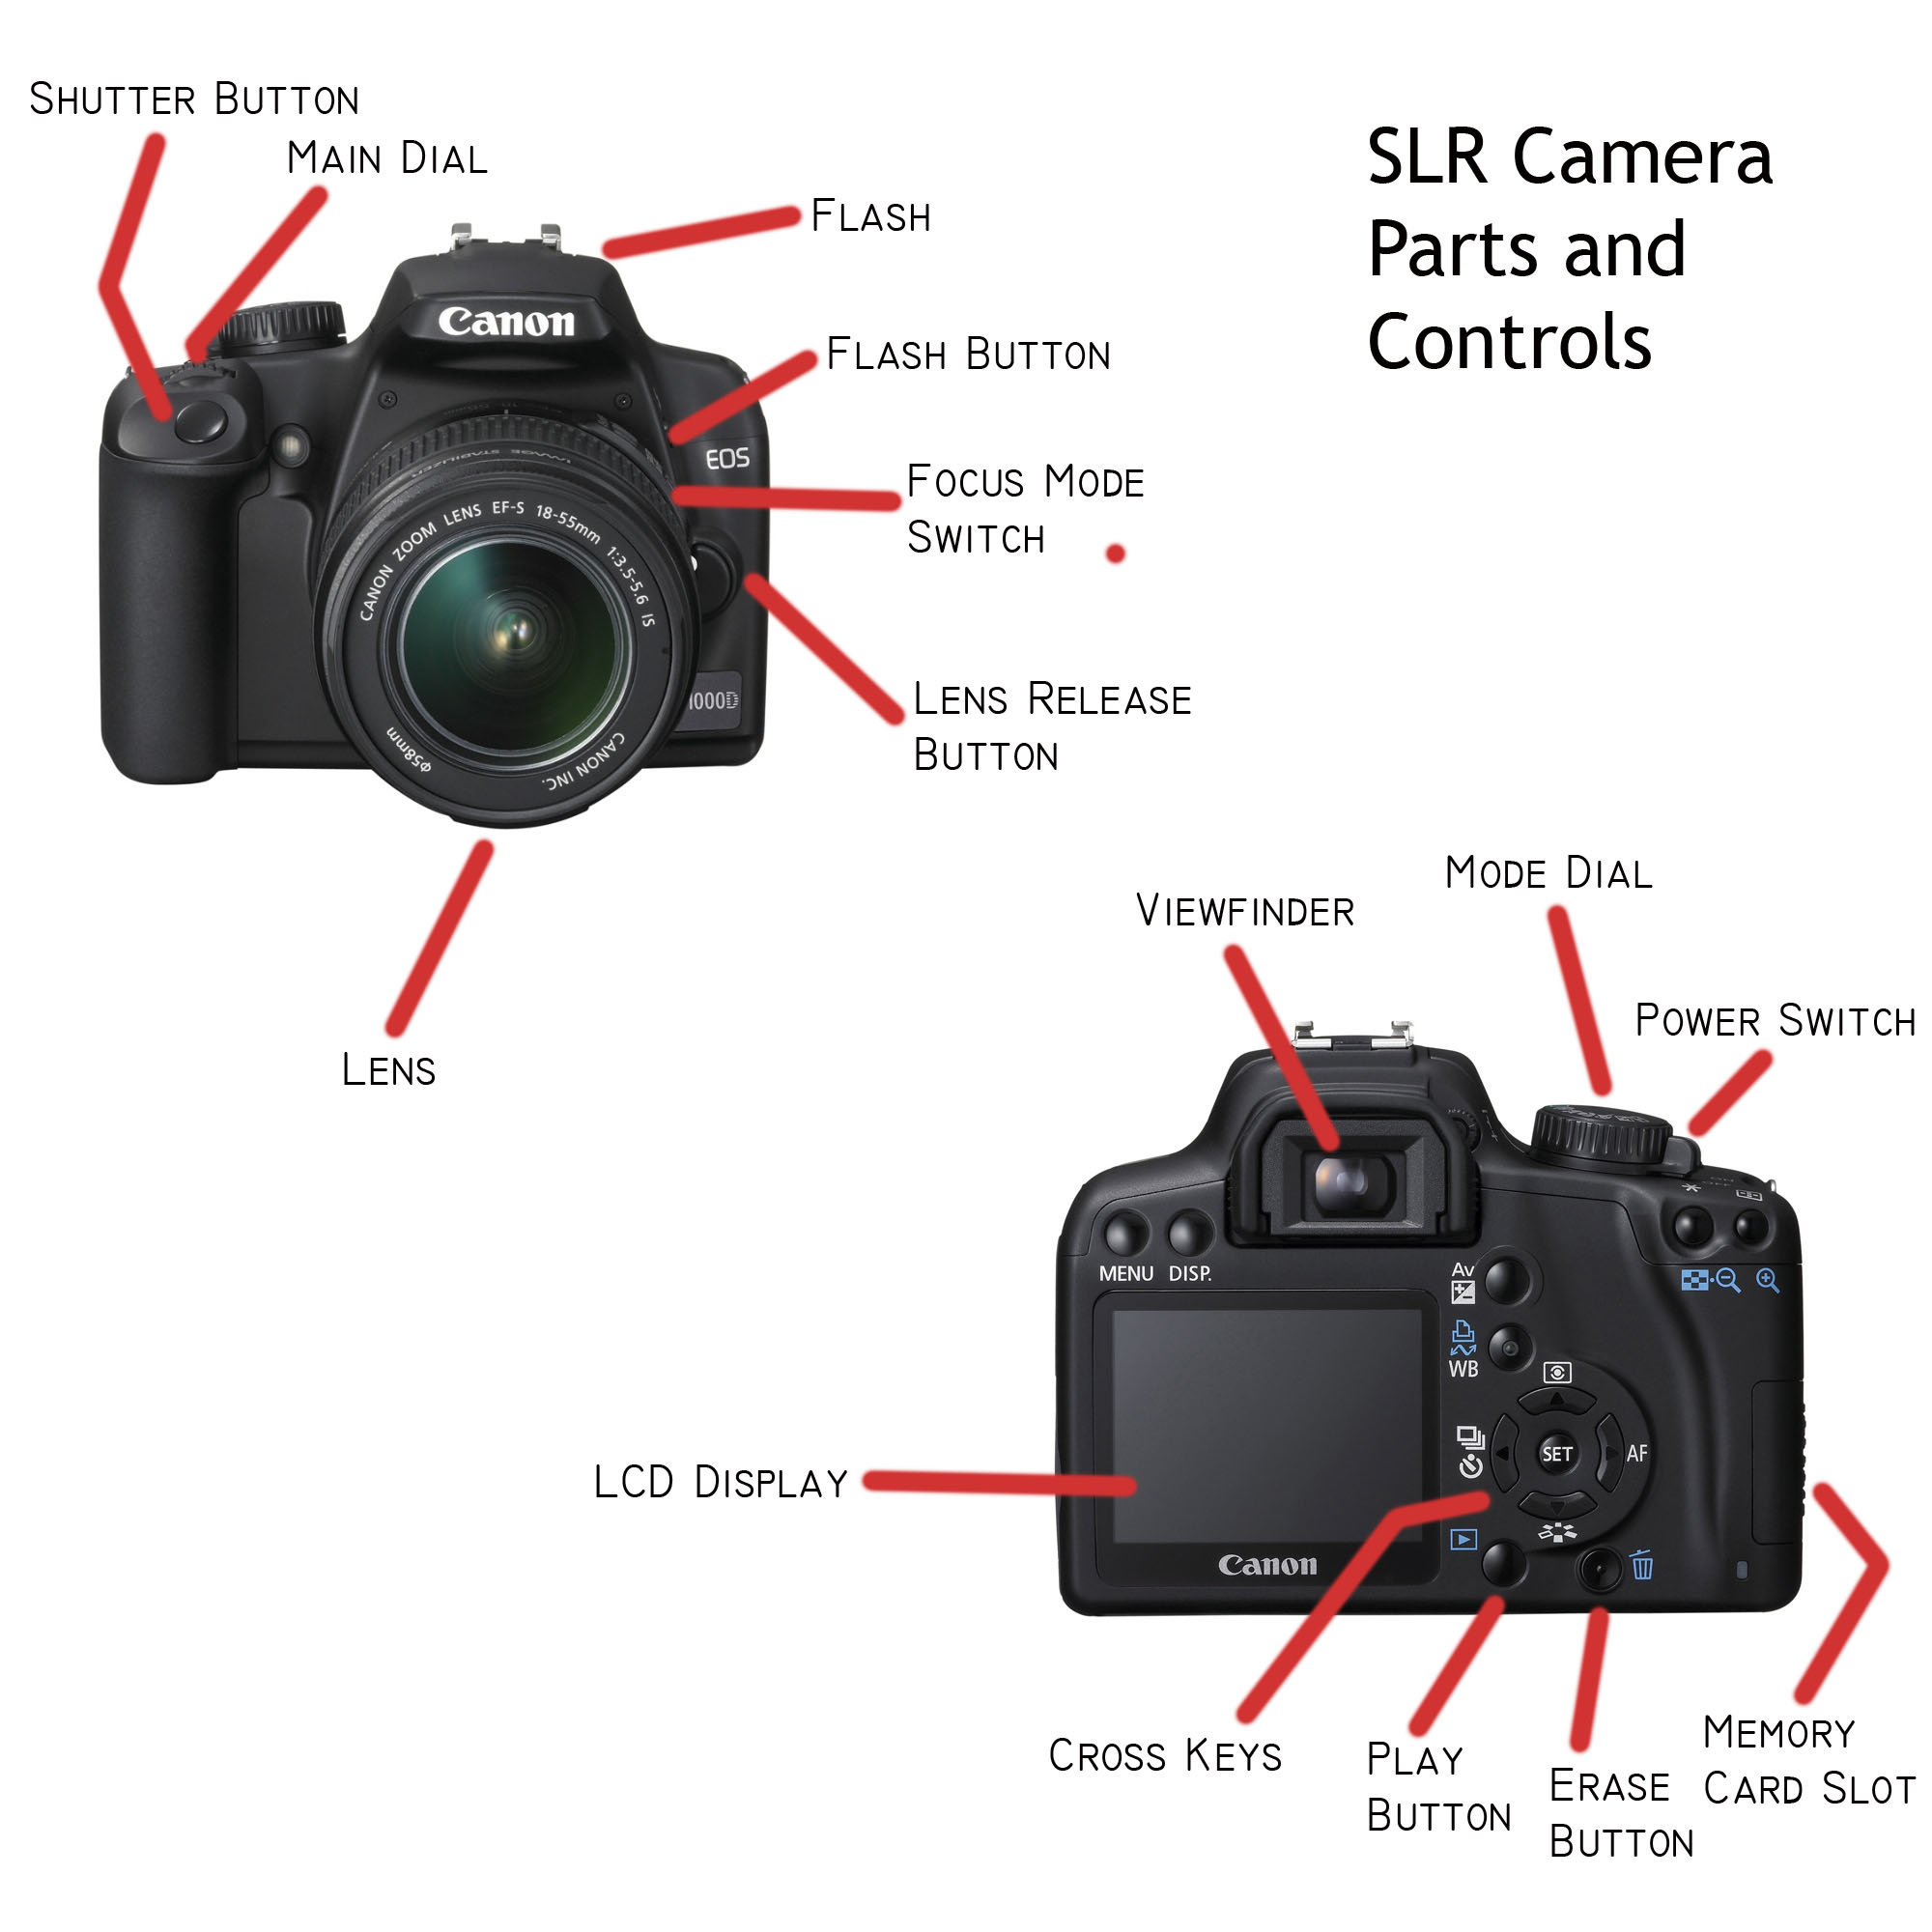 slr camera diagram pioneer avic d1 wiring parts and controls jeremy 39s blog